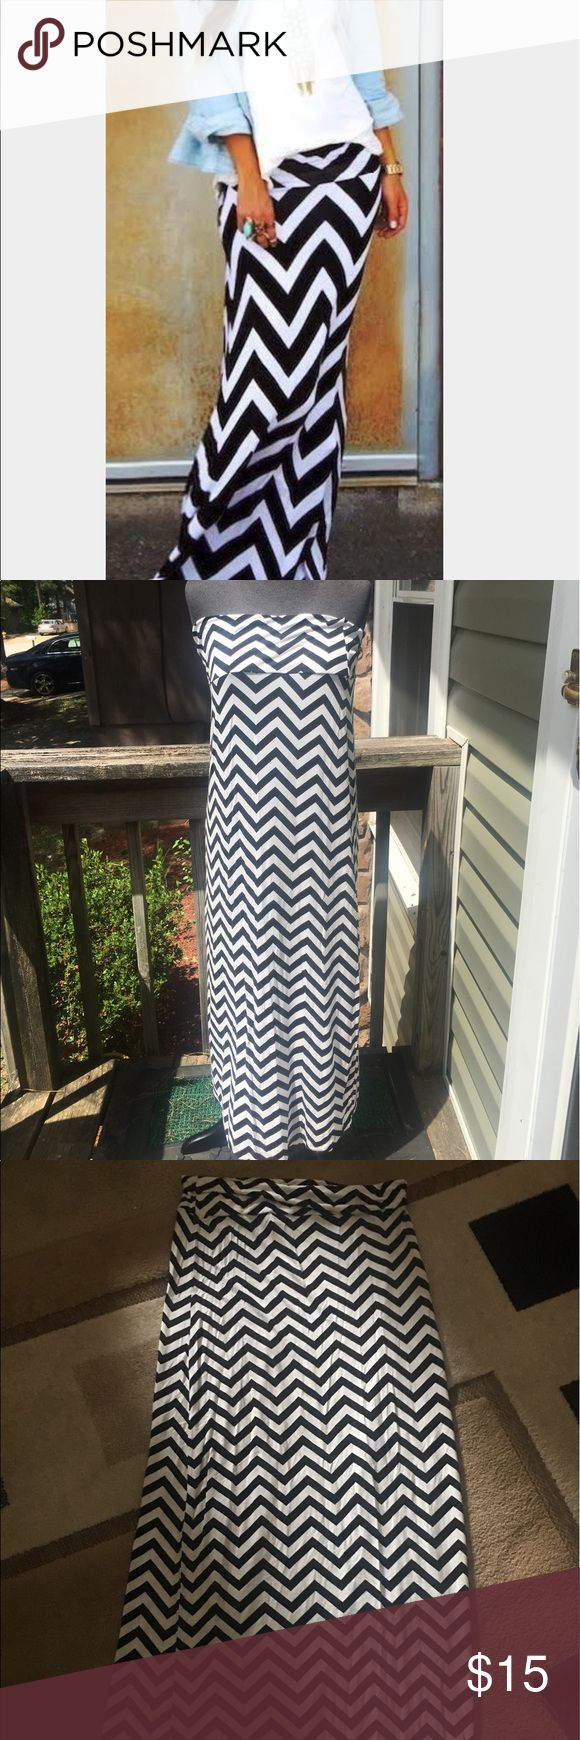 Chevron Maxi Skirt This skirt is black and white it could also be worn as a maxi dress depending on your height. Skirts Maxi